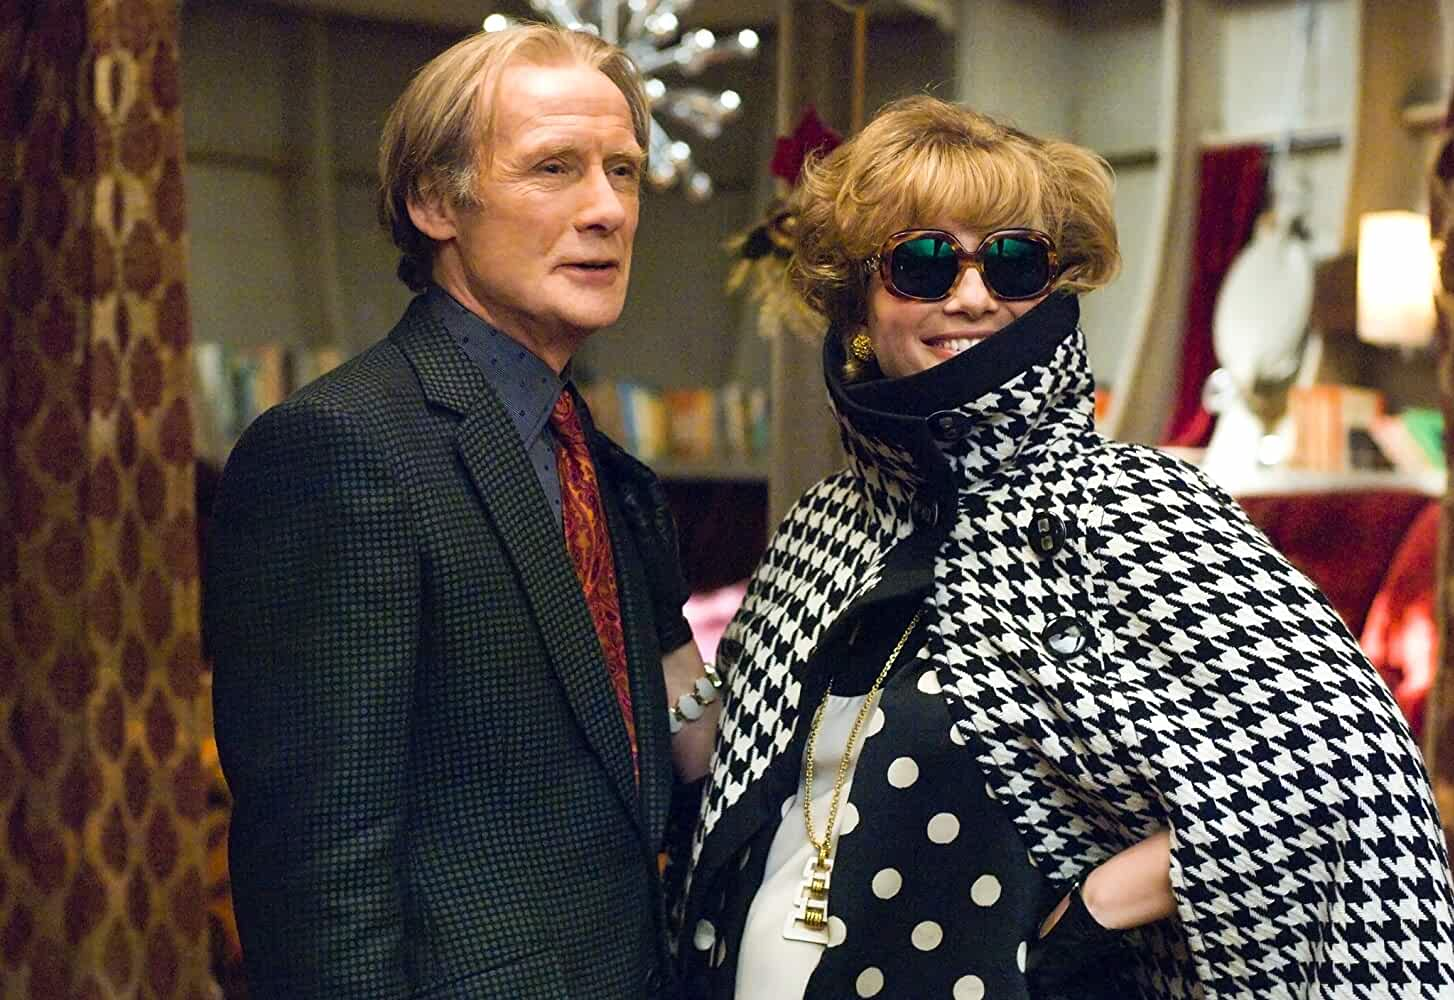 Emma Thompson and Bill Nighy in The Boat That Rocked (2009)